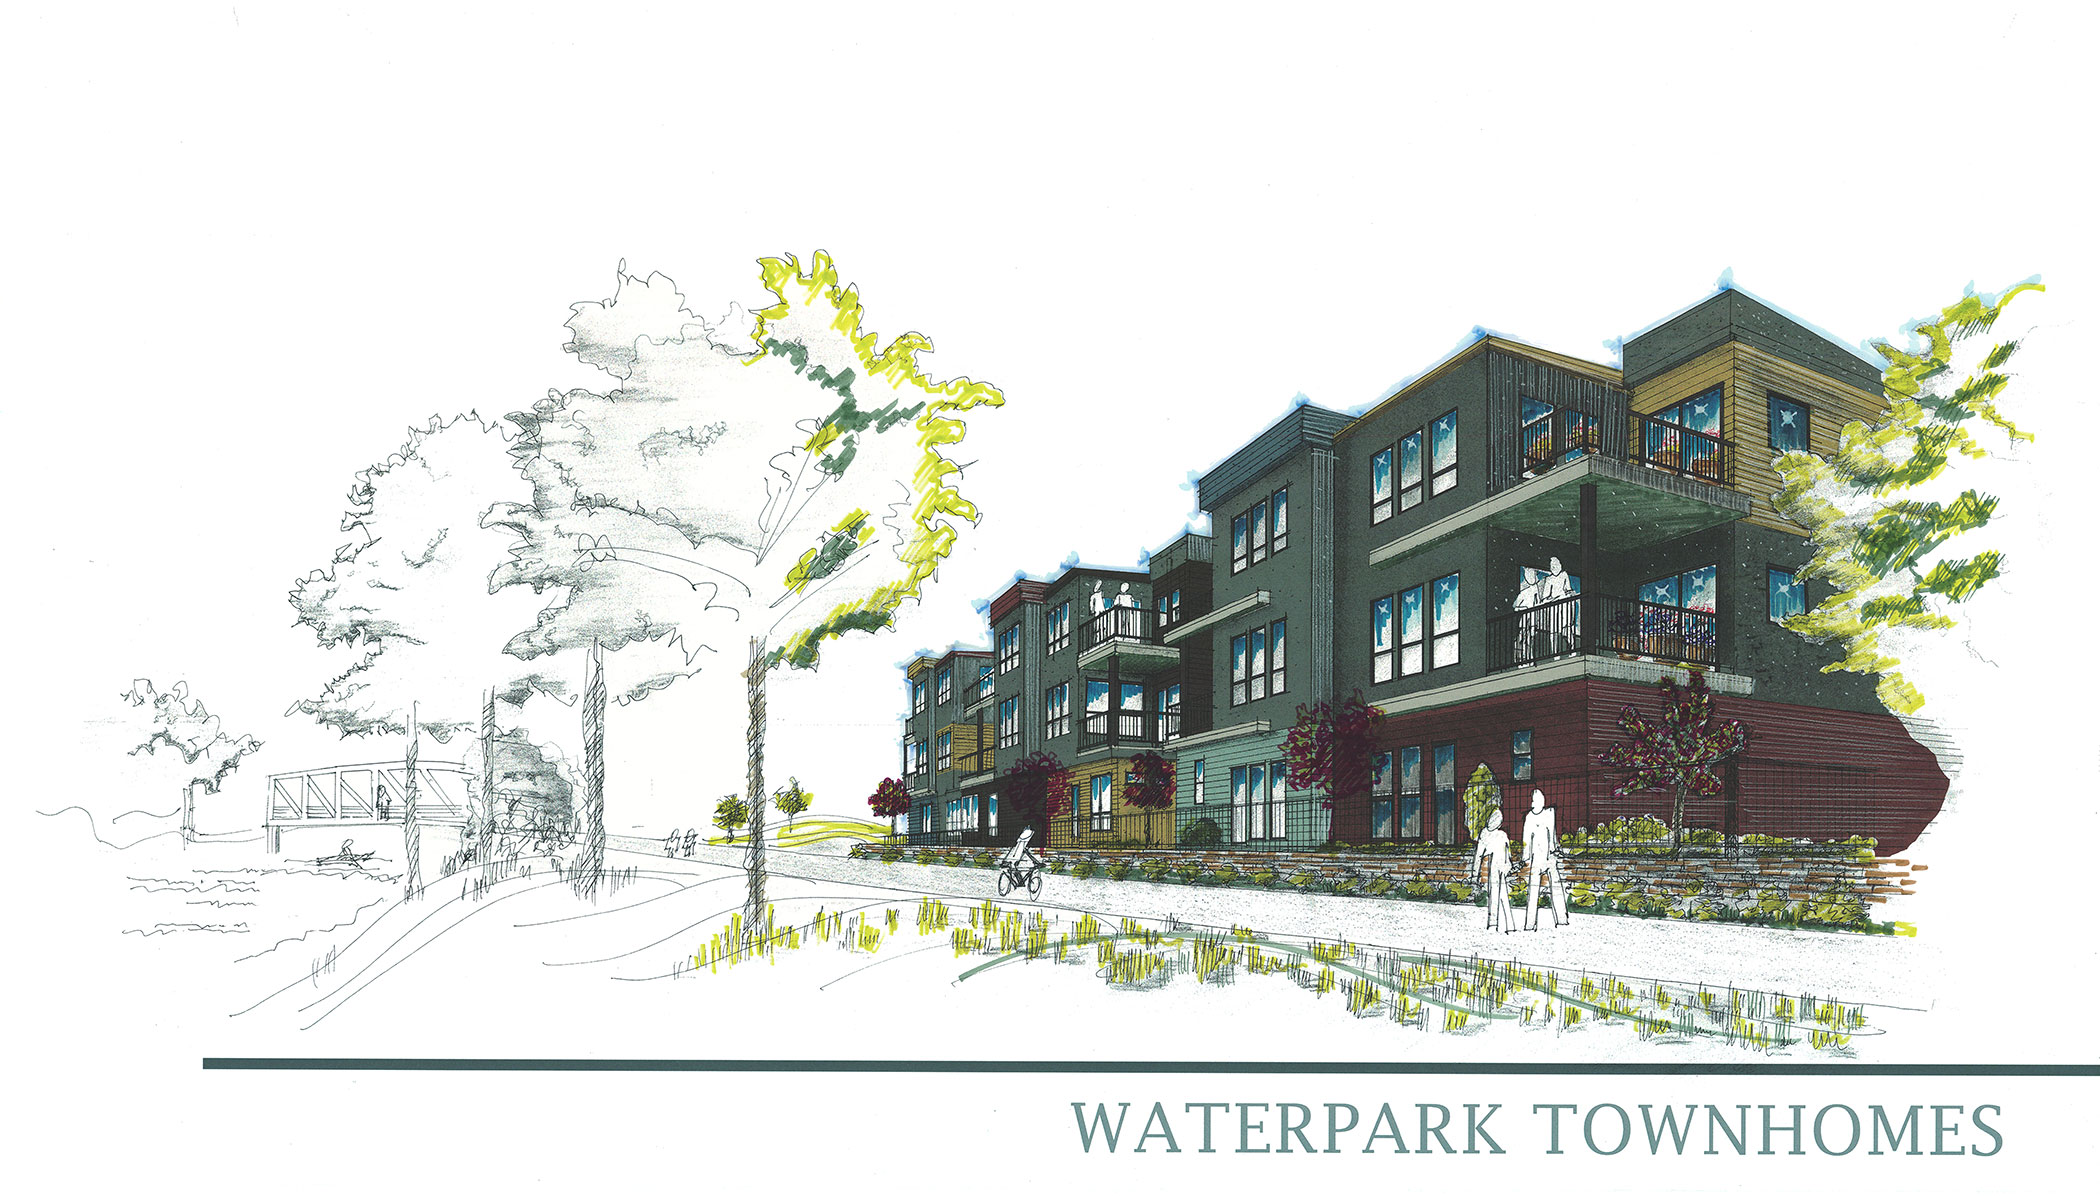 Waterpark-Townhomes-river